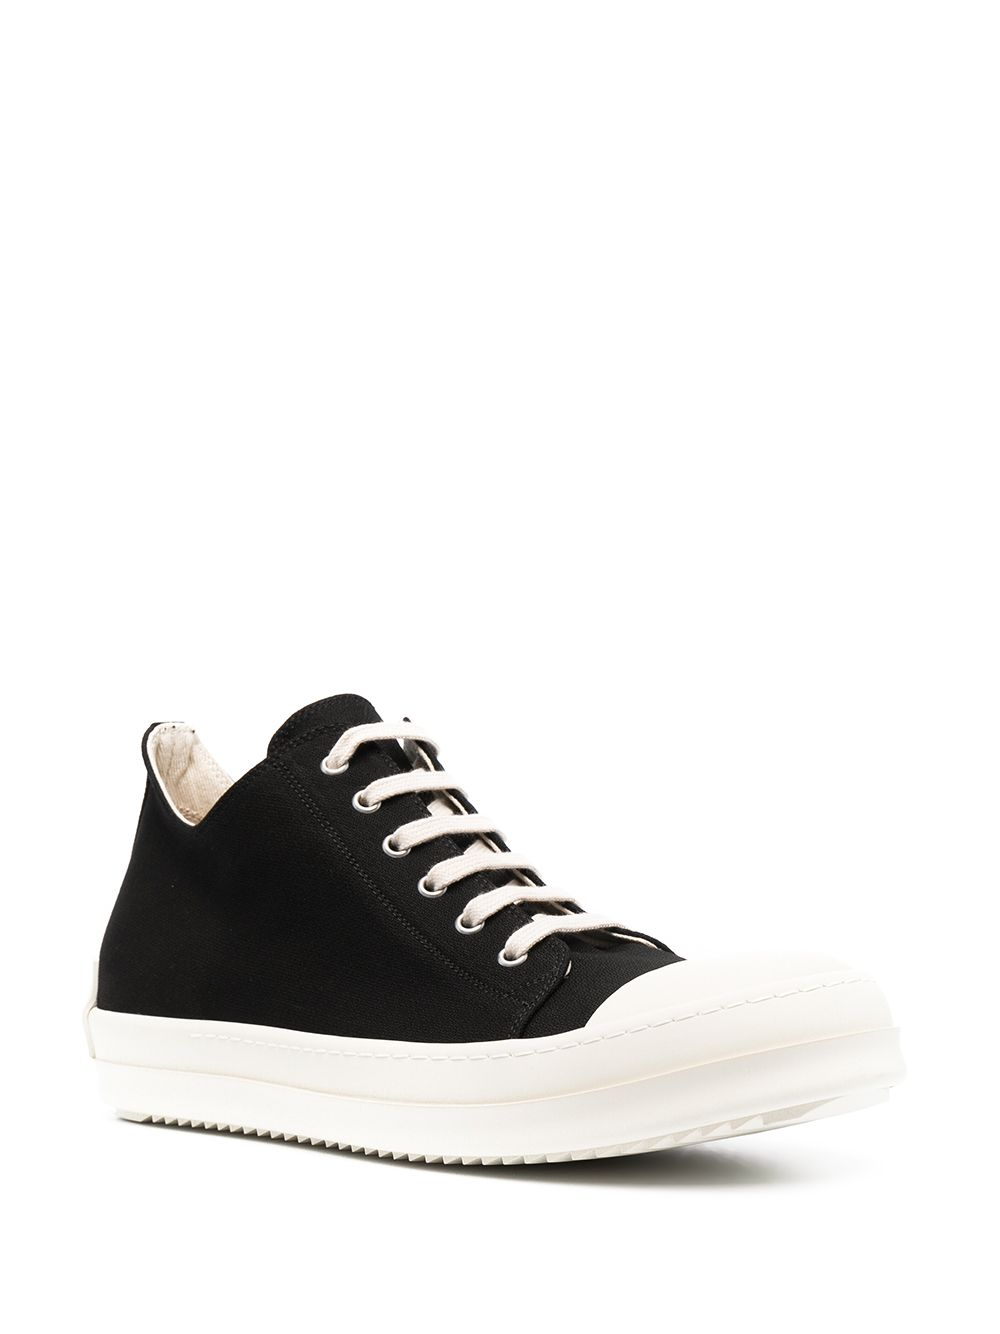 Rick Owens DRKSHDW Low Top Sneakers Black